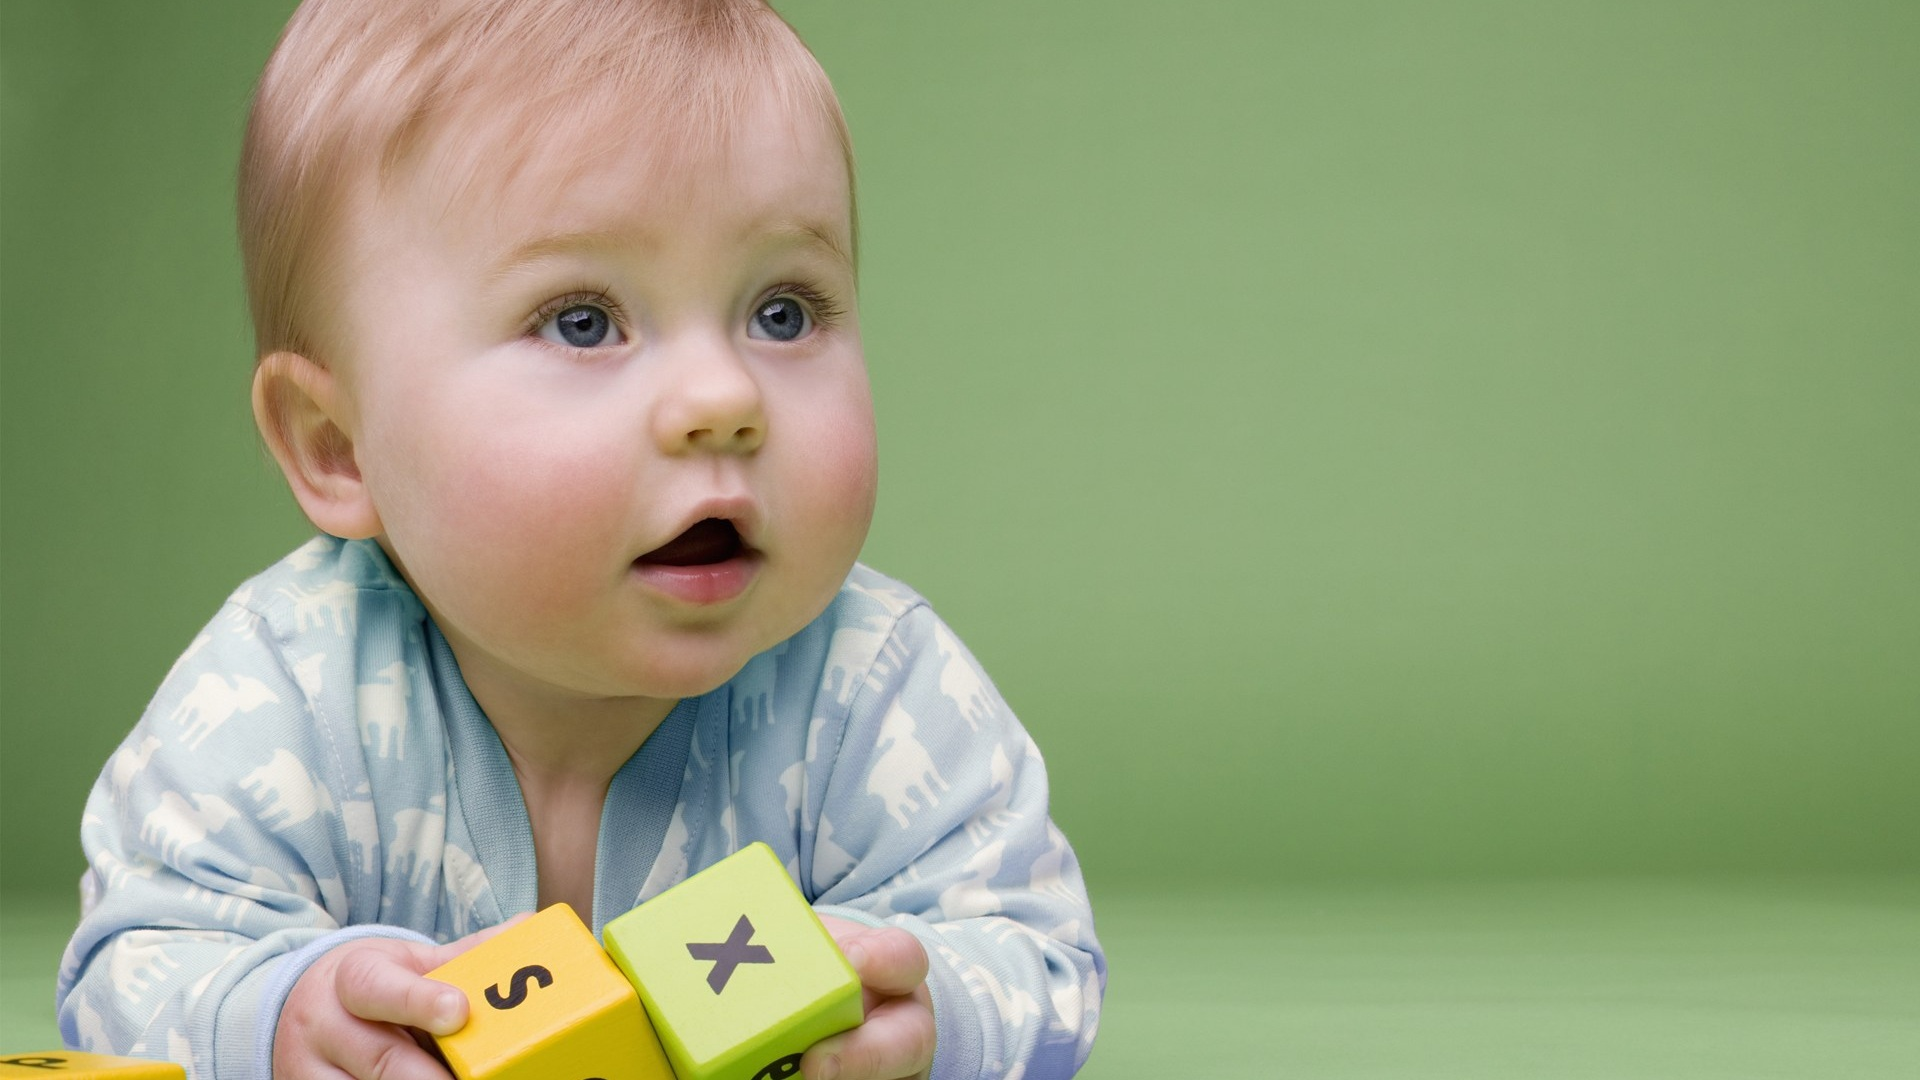 cute-baby-boy-Images-Pics